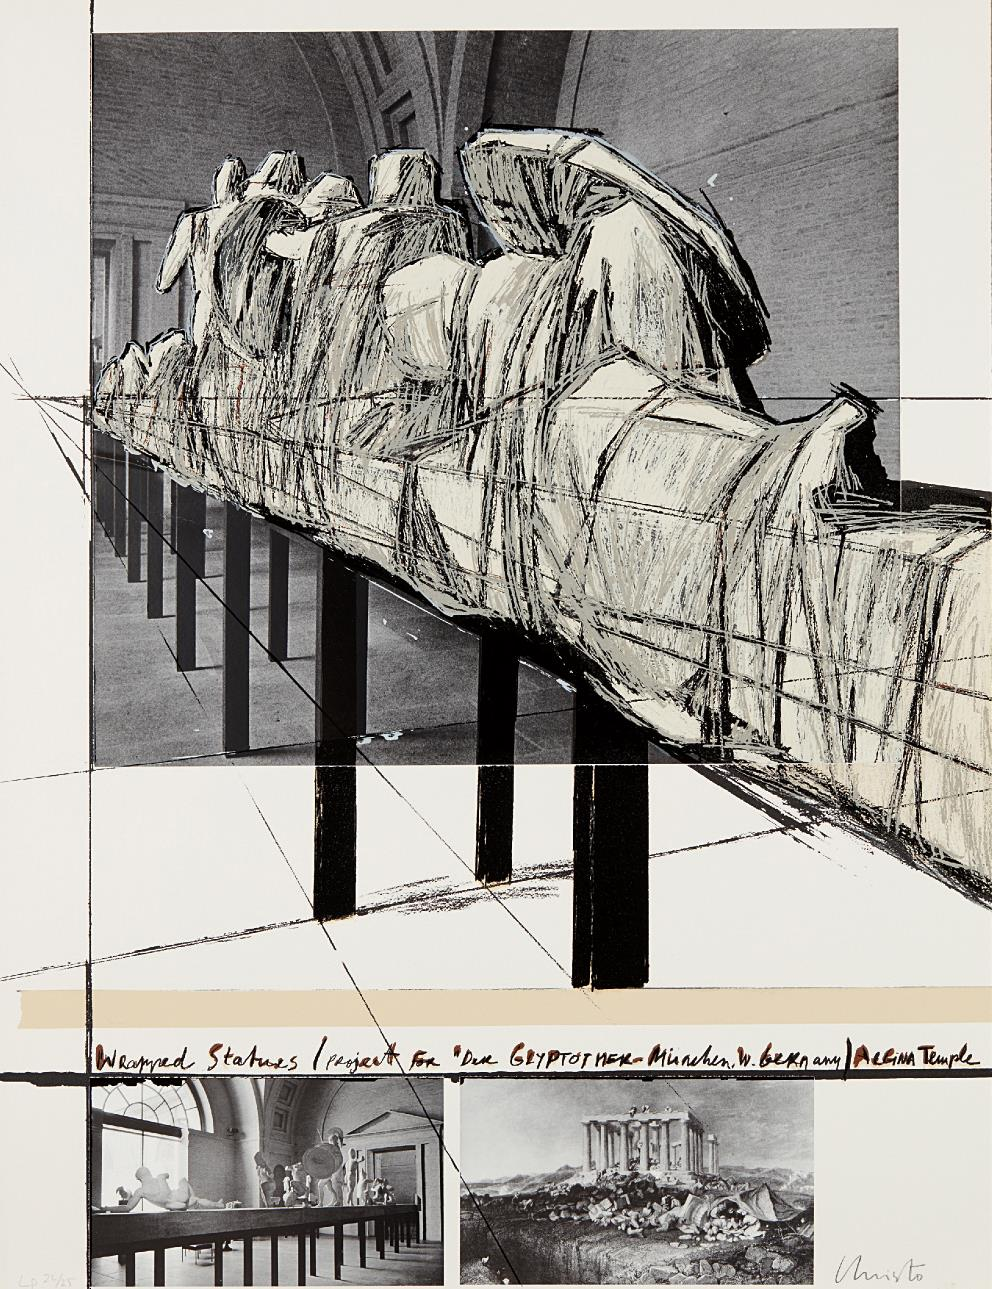 Christo and Jeanne-Claude-Wrapped Statues, Project For Die Glyptothek, Munchen-1988